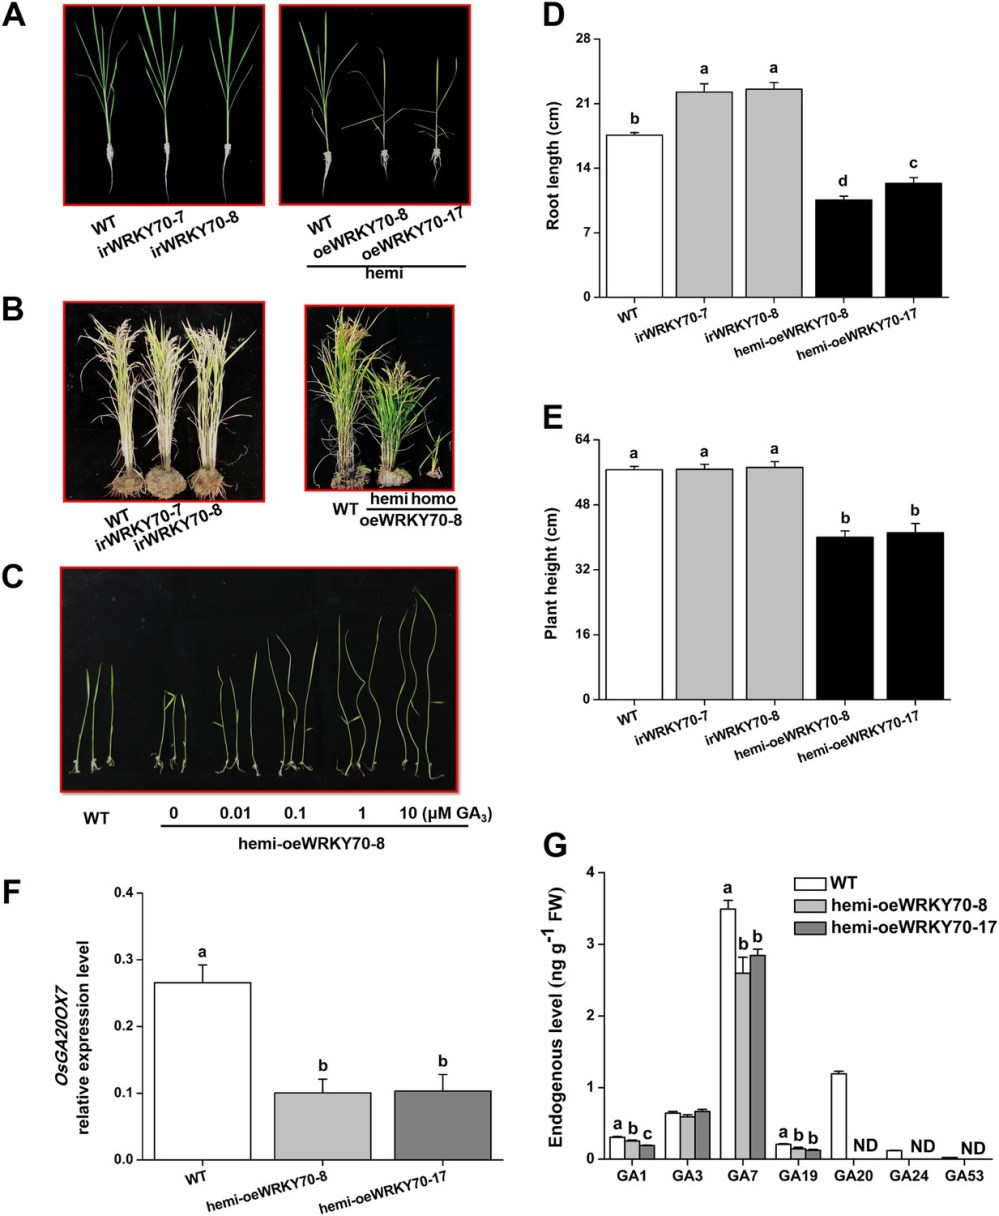 medium resolution of altering oswrky70 expression affects ga levels and plant growth